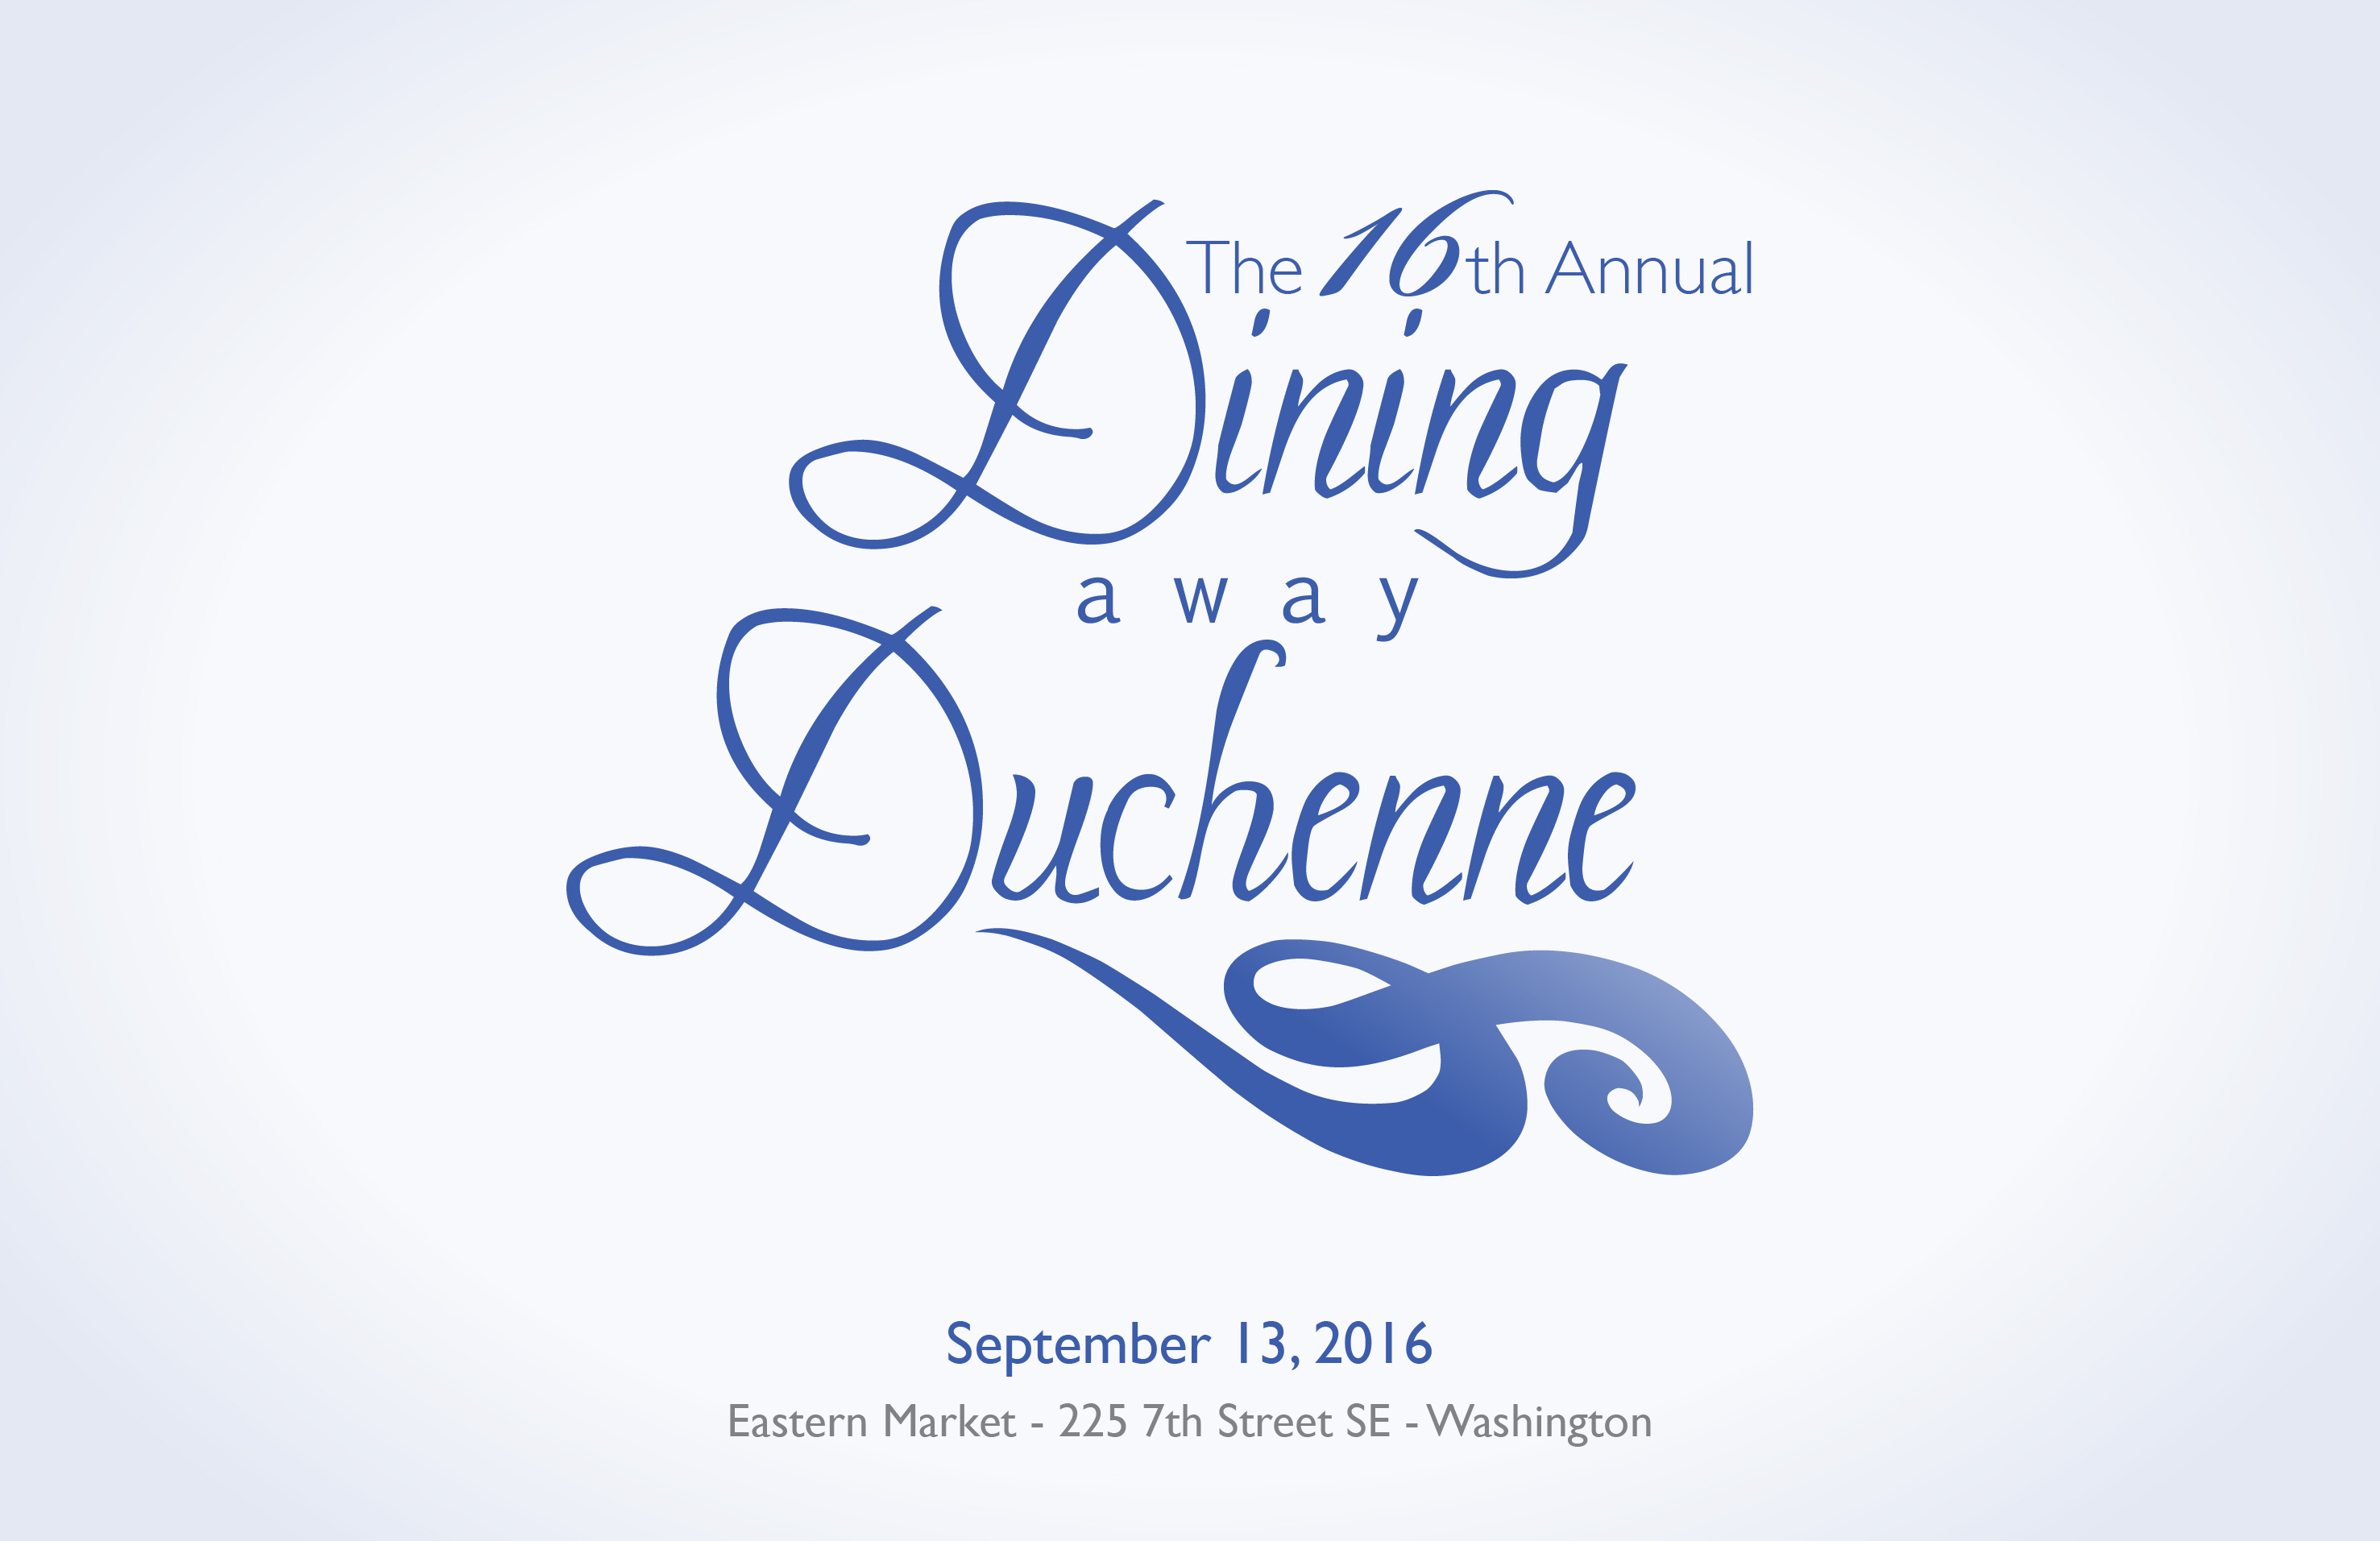 16th Annual Dining Away Duchenne